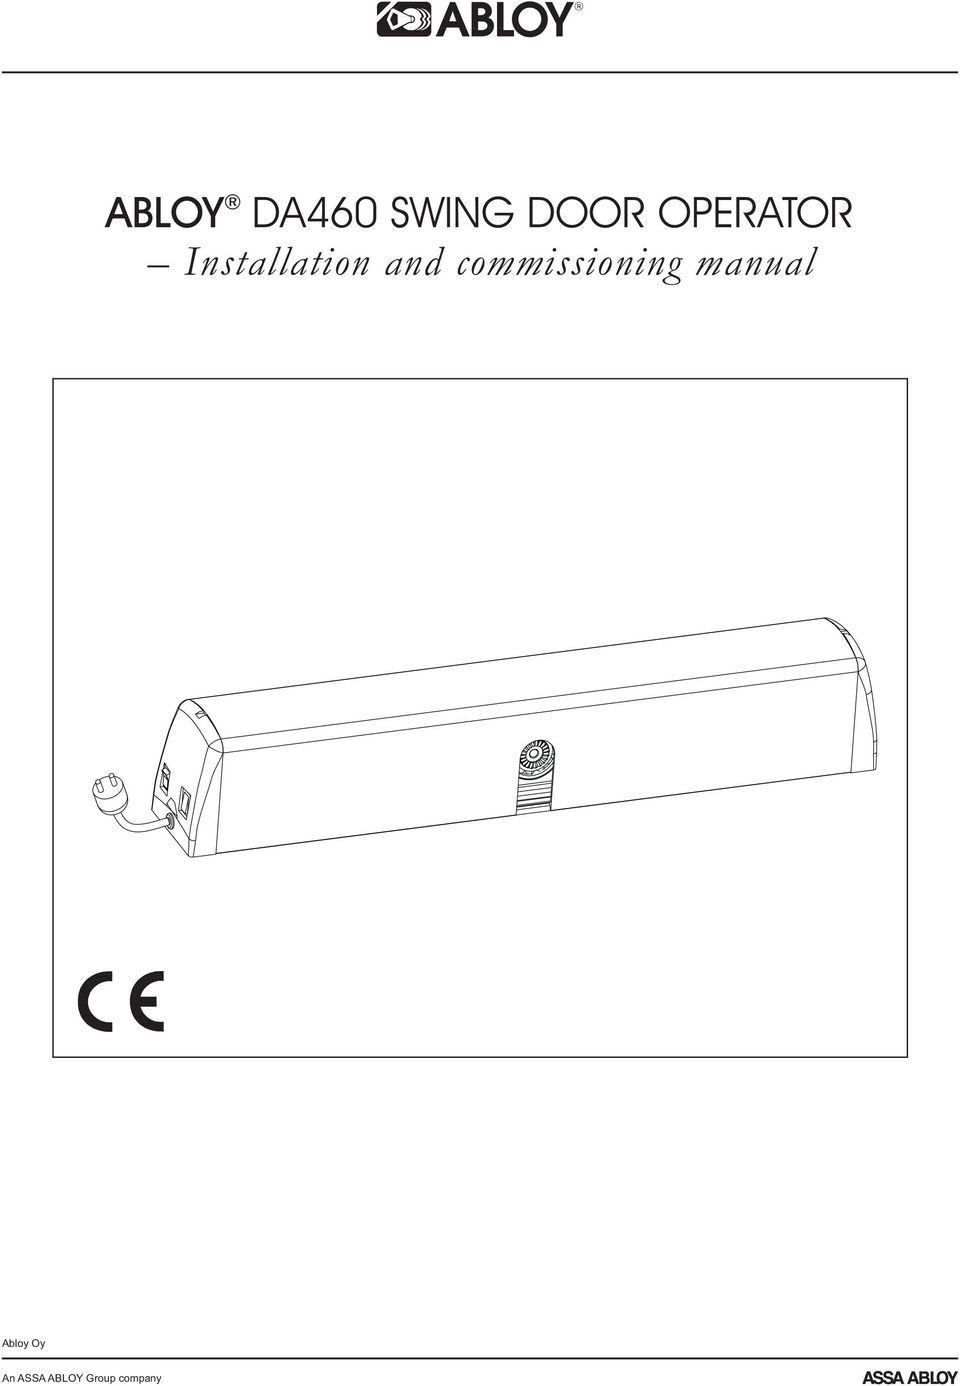 commissioning manual Abloy